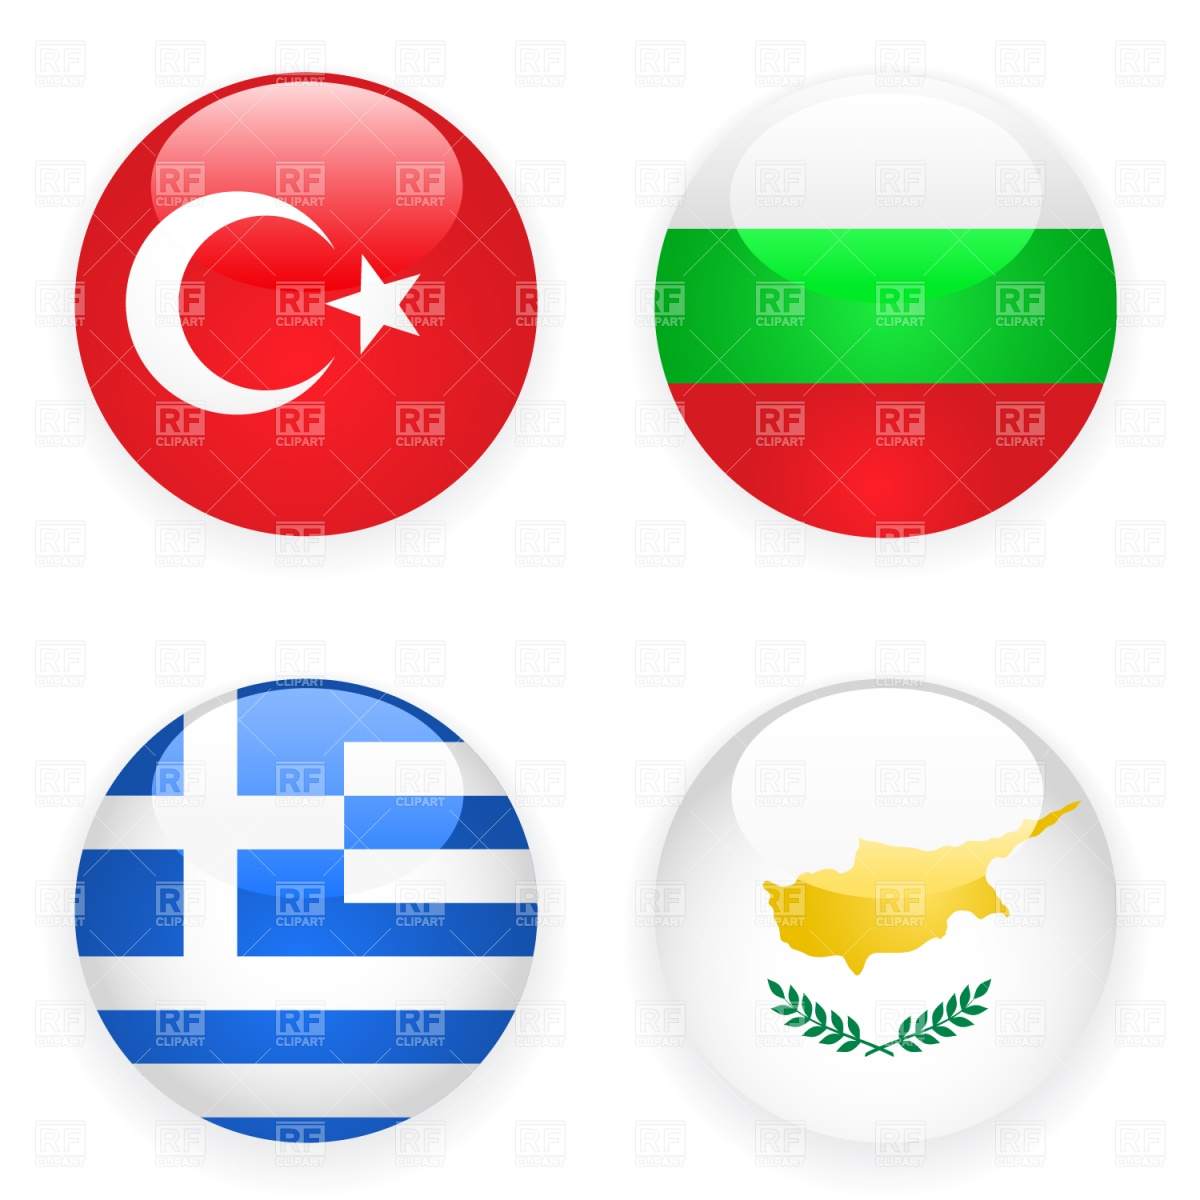 Turkey, Cyprus, Greece and Bulgaria button flags Vector Image.